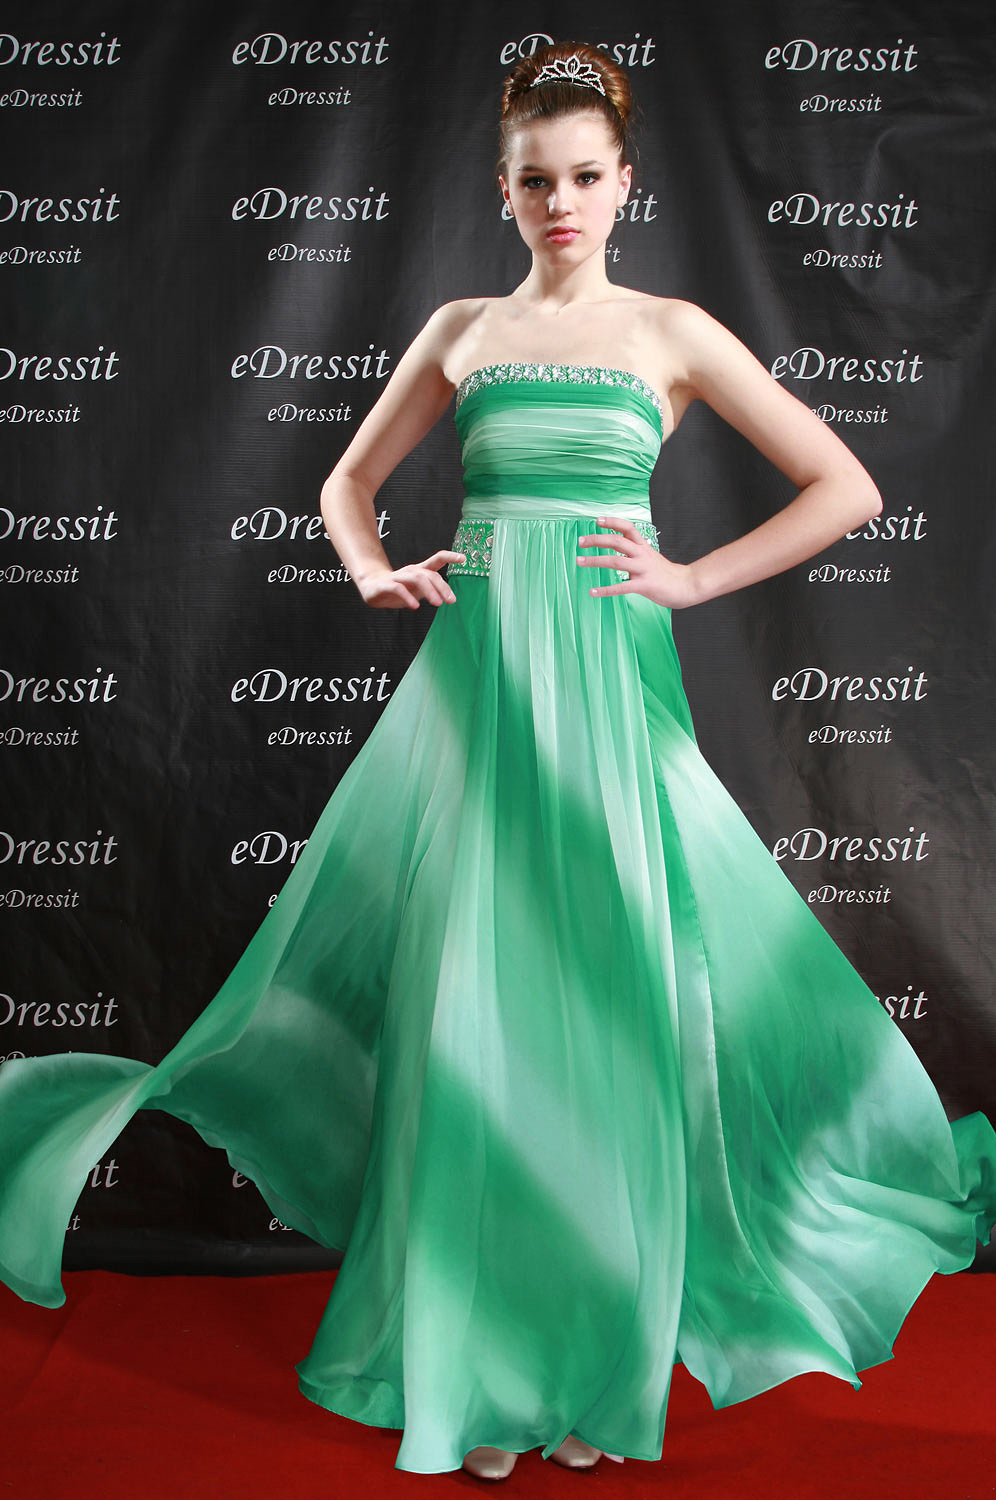 eDressit Dramatic Gradient Strapless Evening Dress (00096204)